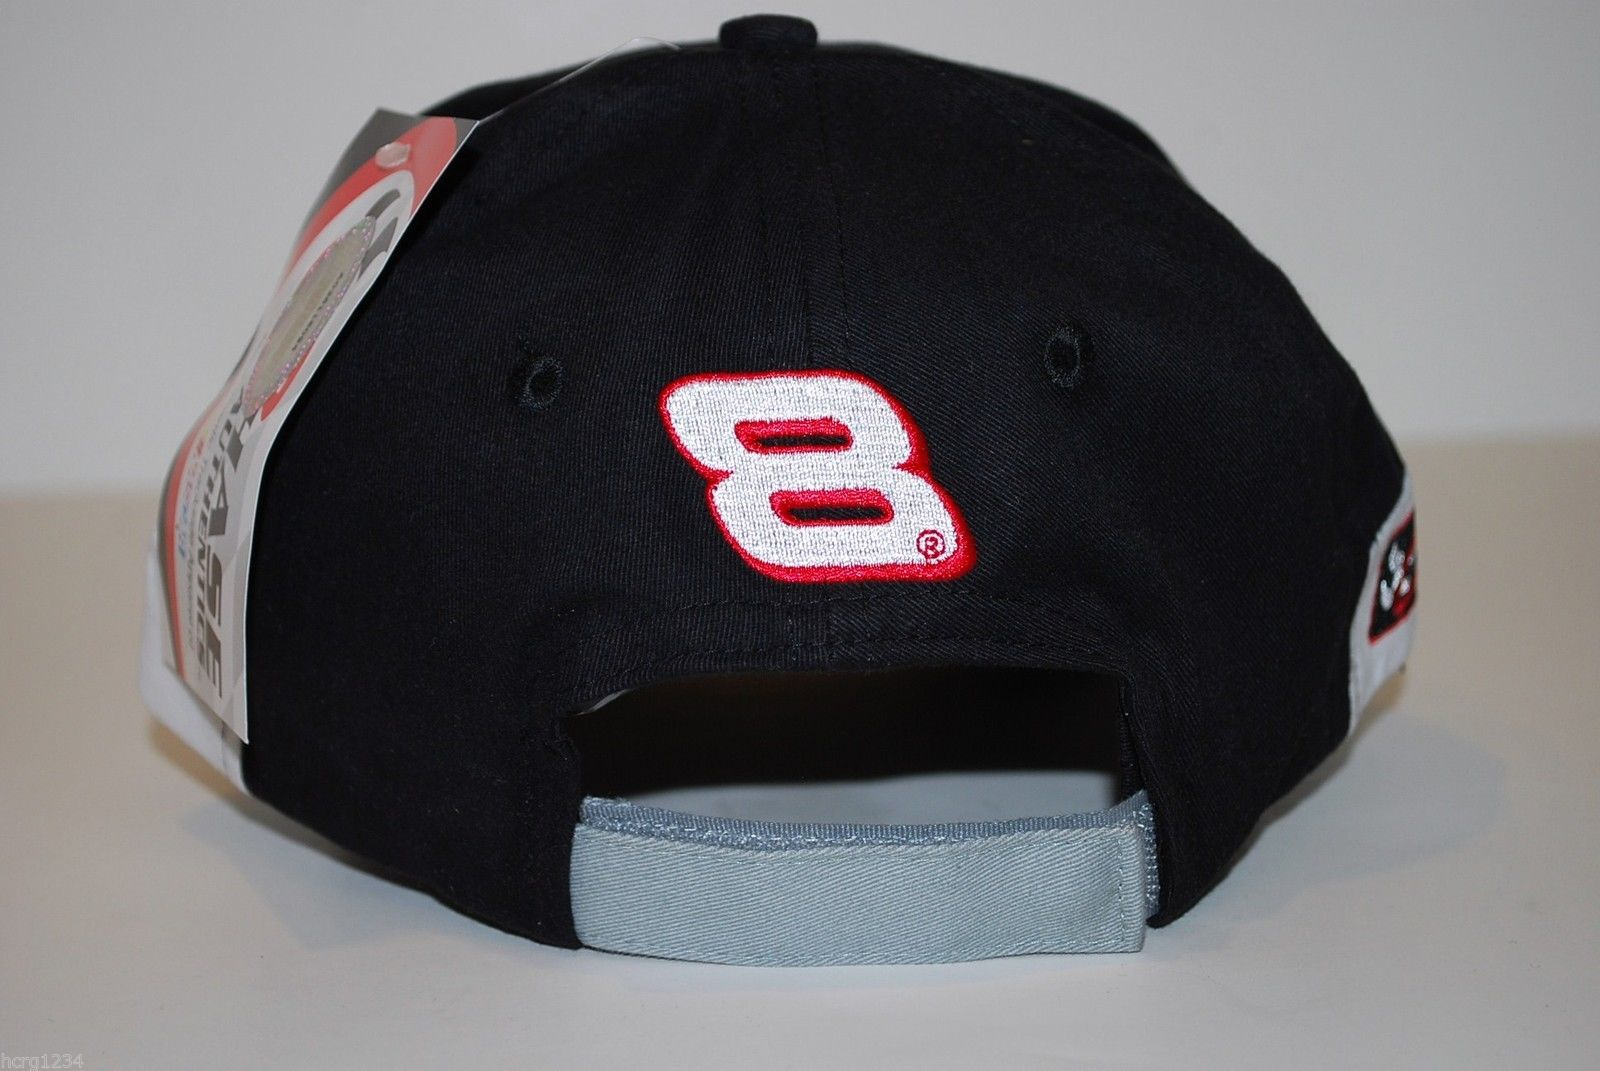 NASCAR CHASE AUTHENTICS  CAP HAT - BUD SNAP-ON RACING  - #8 DALE EARNHARDT JR